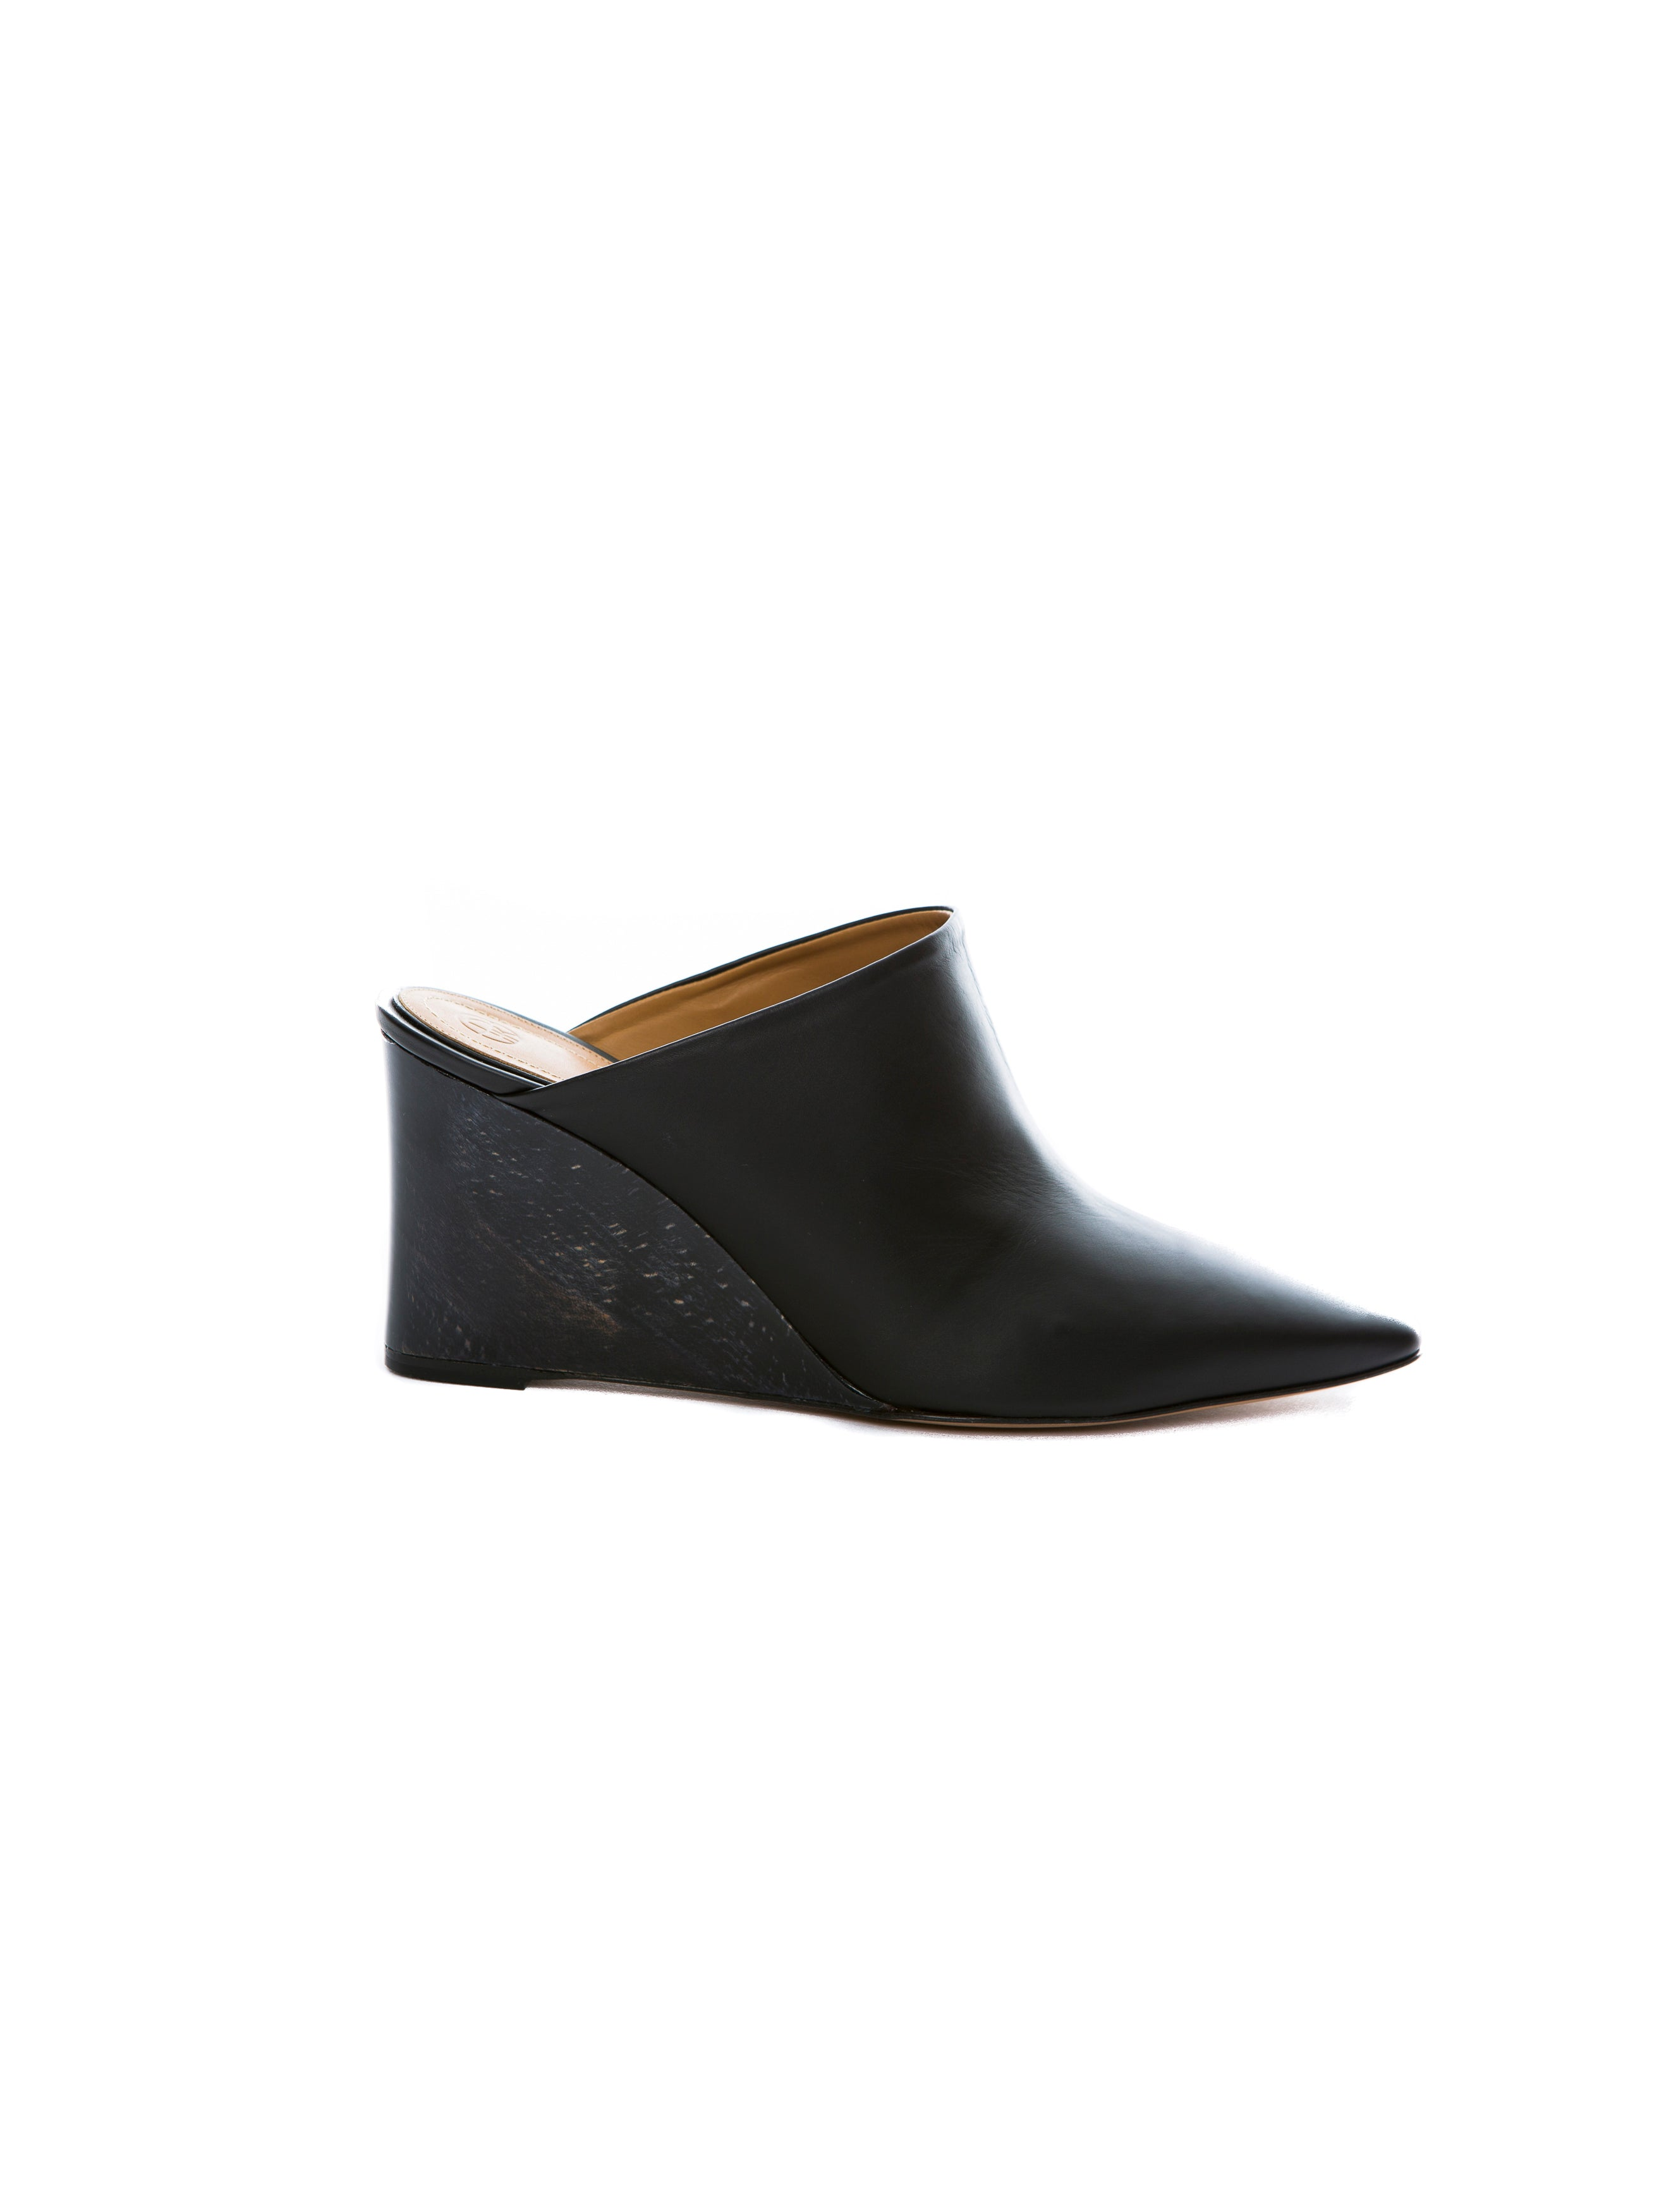 FLORA LEATHER WEDGE MULE BLACK